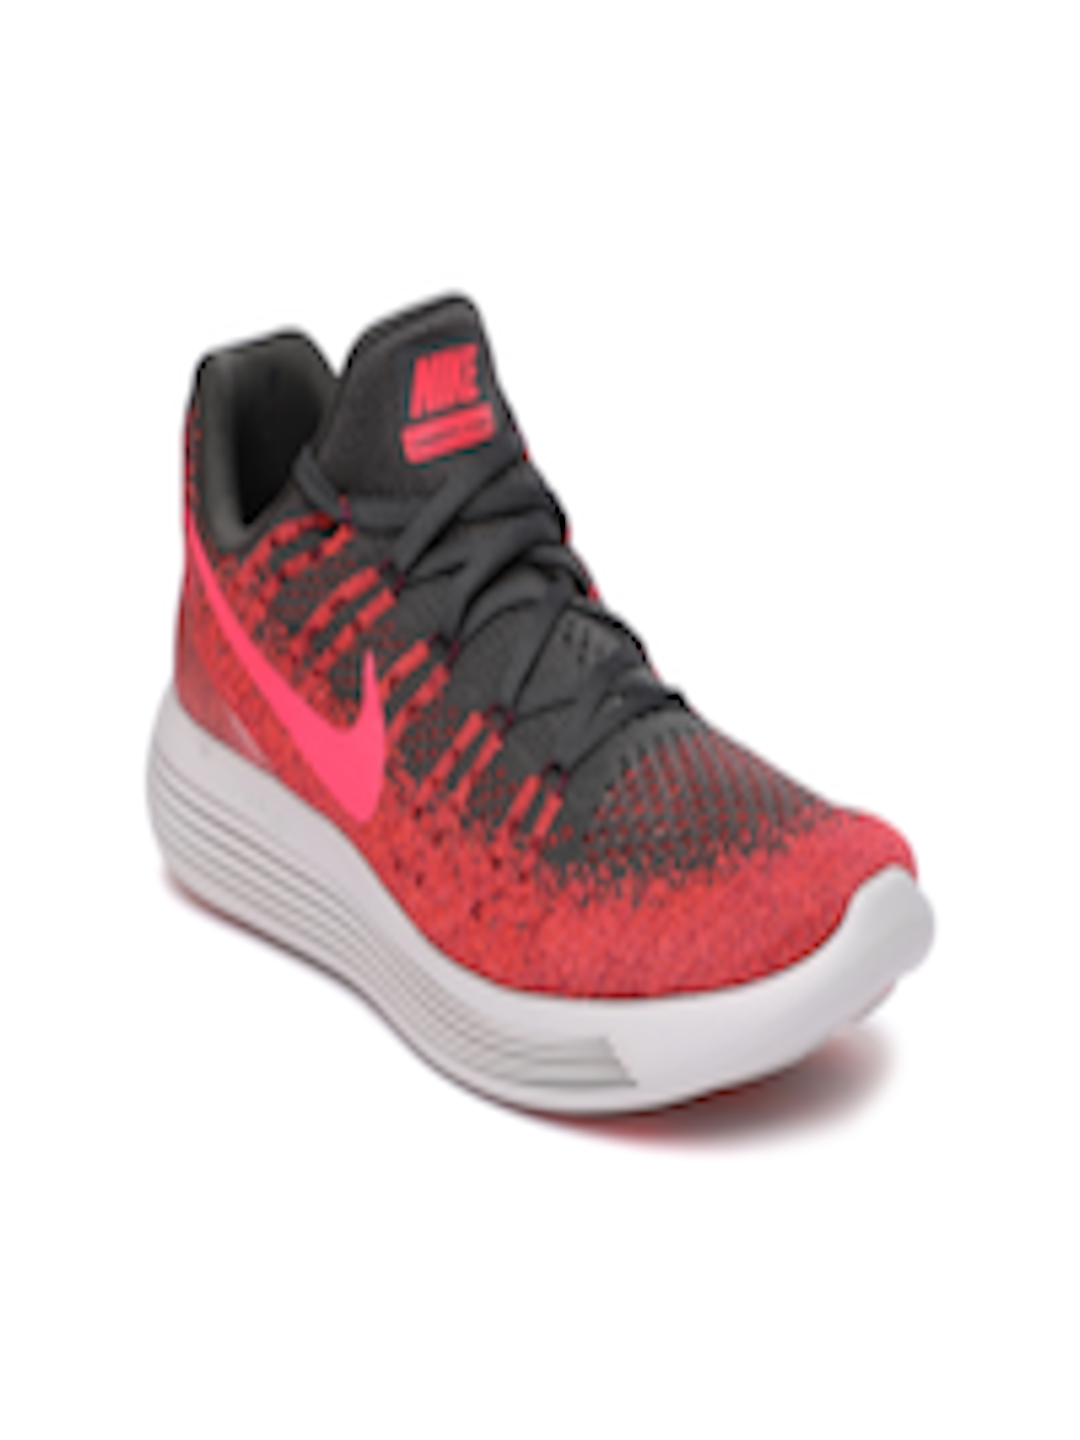 quality design 82a9f d34b2 Buy Nike Women Red & Black LunarEpic Low Flyknit 2 Running Shoes - -  Footwear for Women